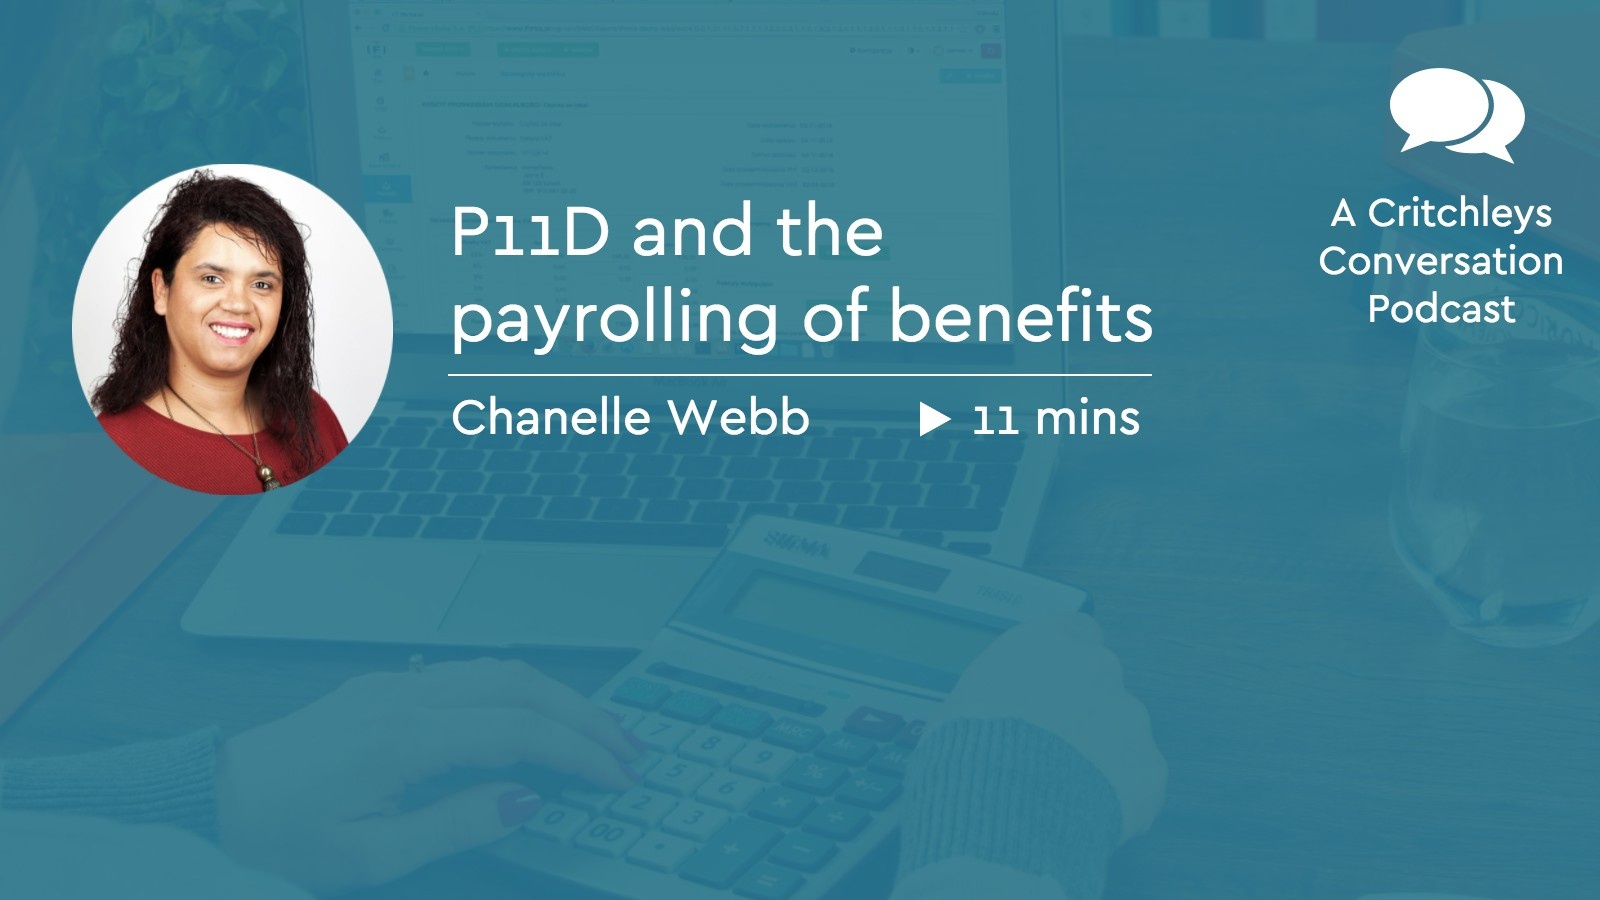 P11D and the payrolling of benefits